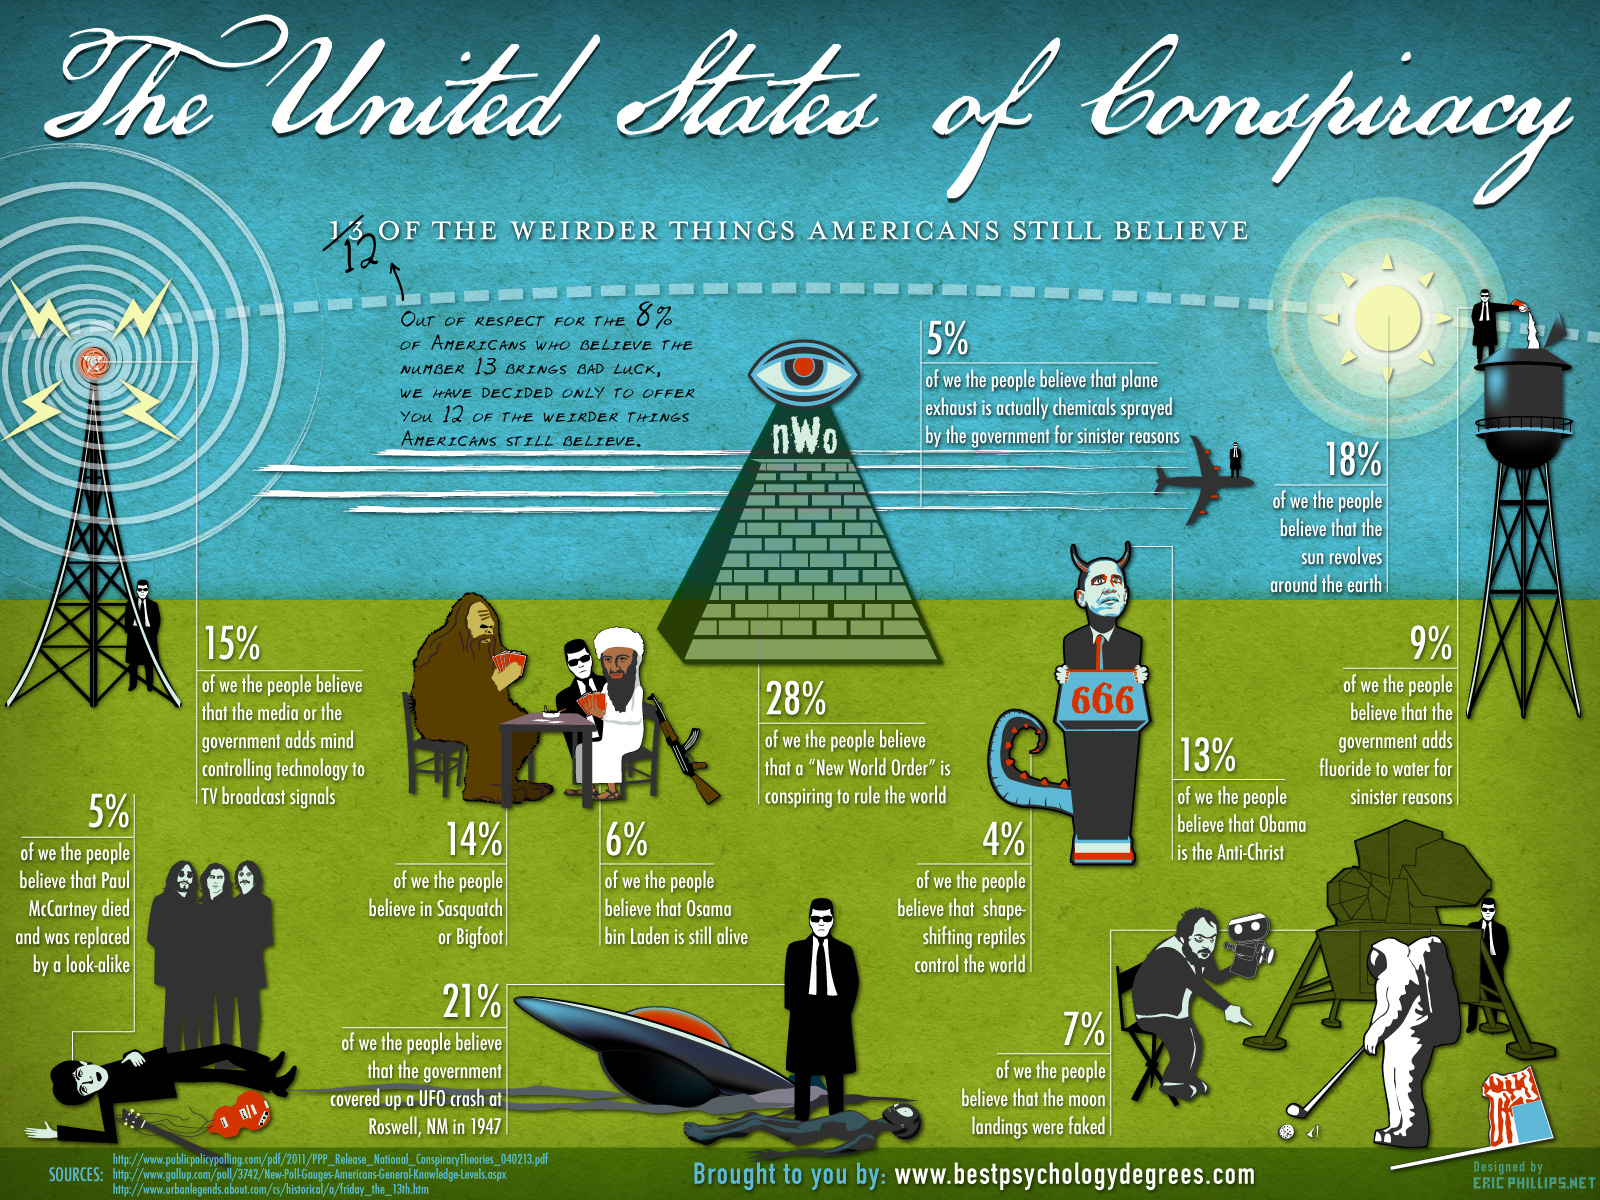 12-of-the-weirder-conspiracies-americans-believe_518b785f3a6c6